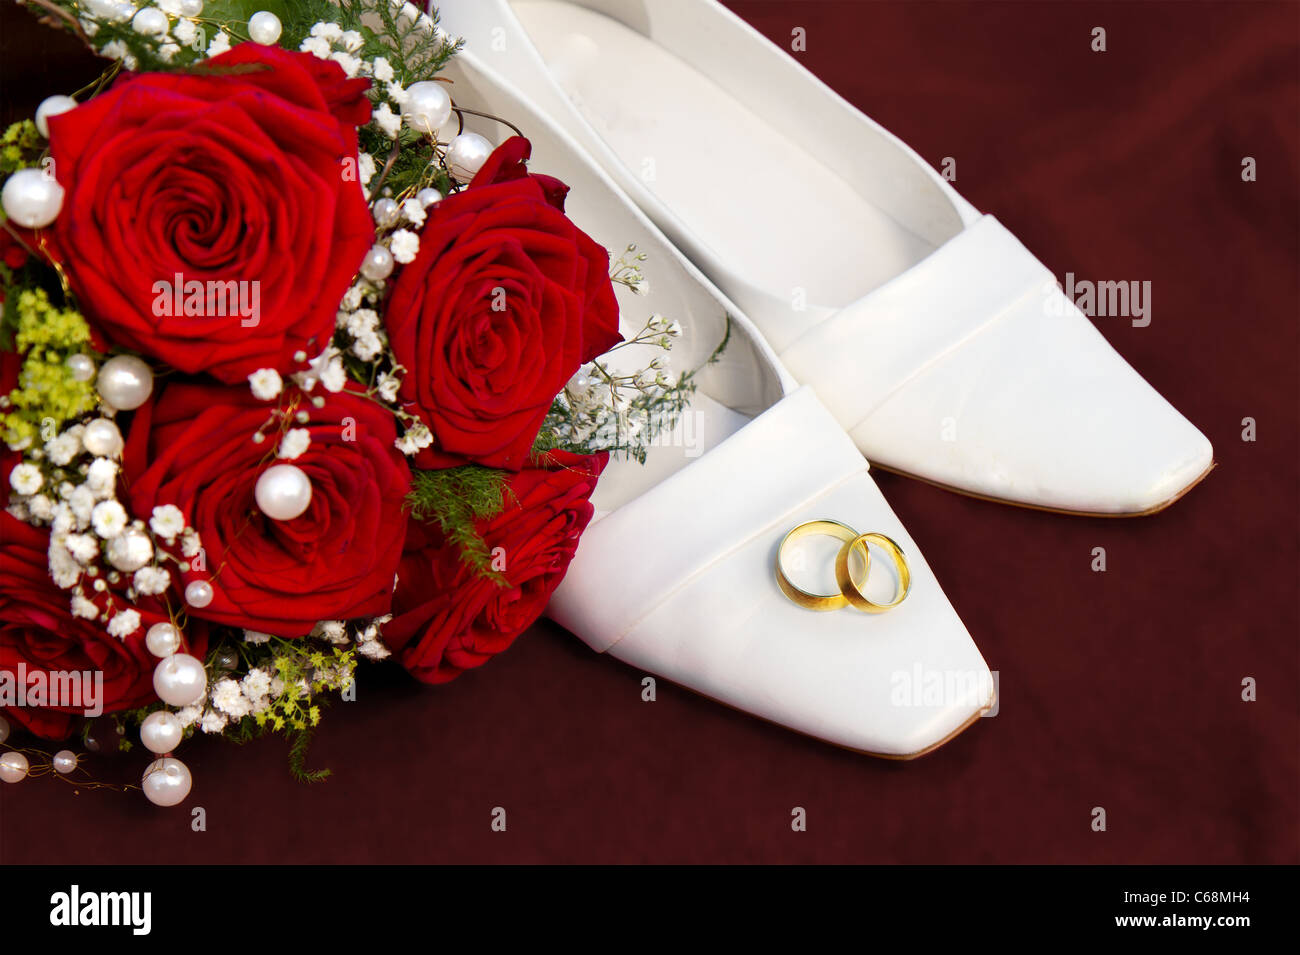 Wedding Symbol Concept With White Bridal Dancing Shoes A Red Roses